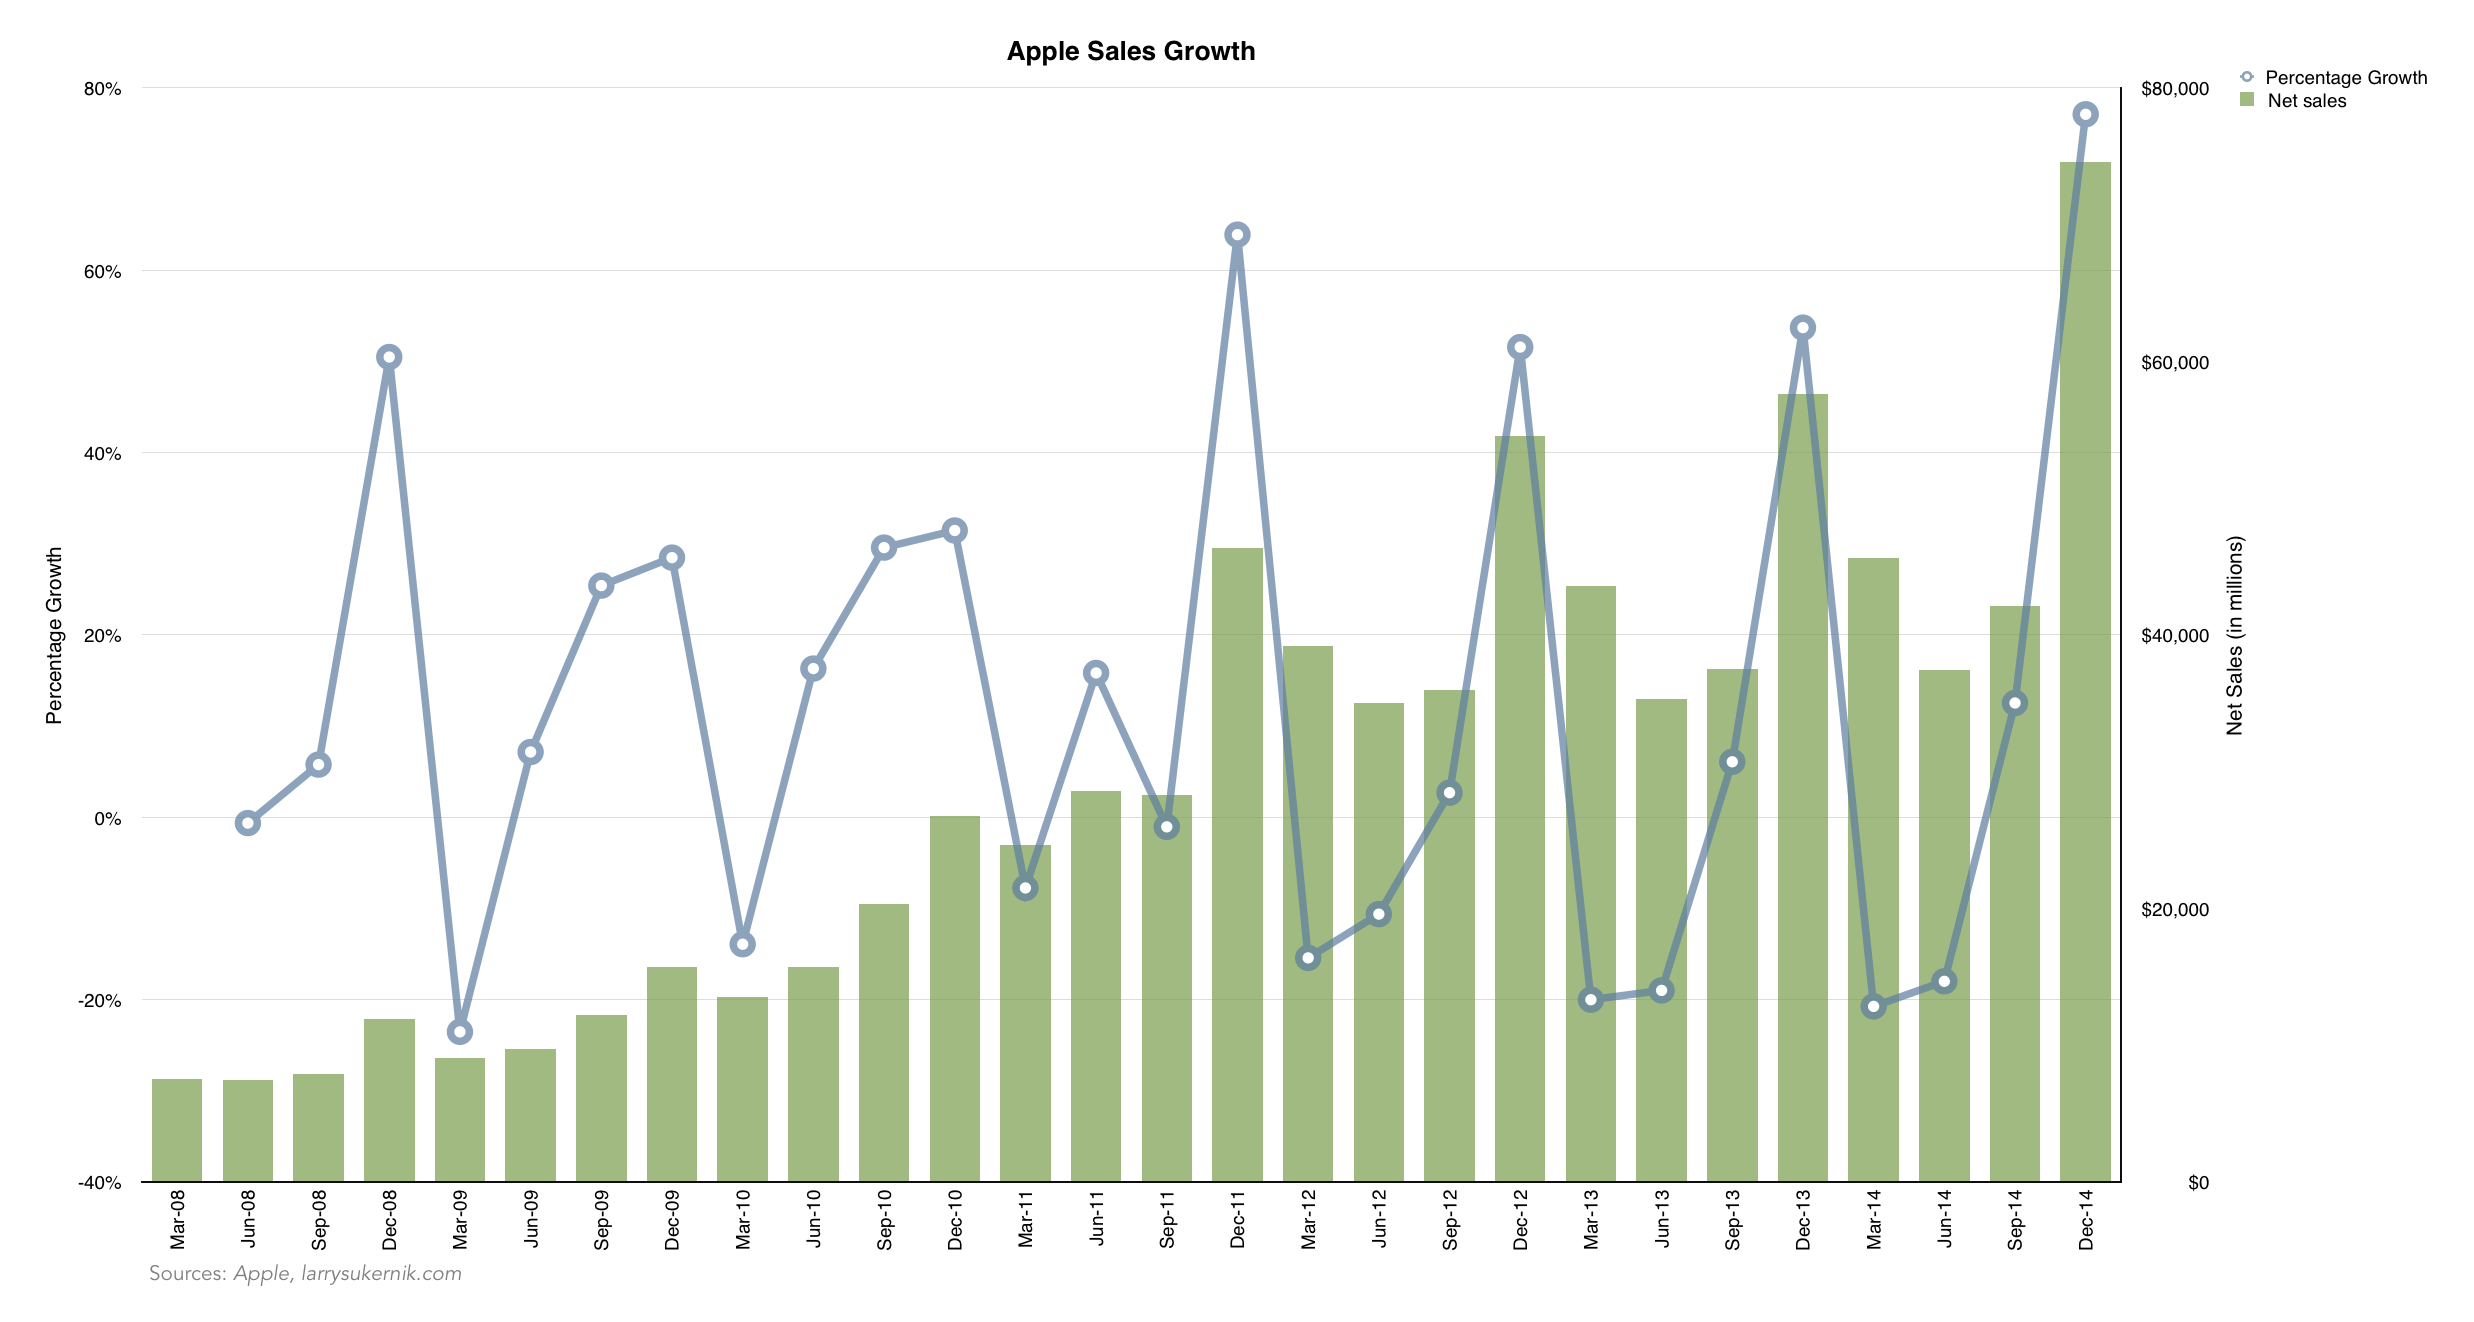 Apple Sales Growth